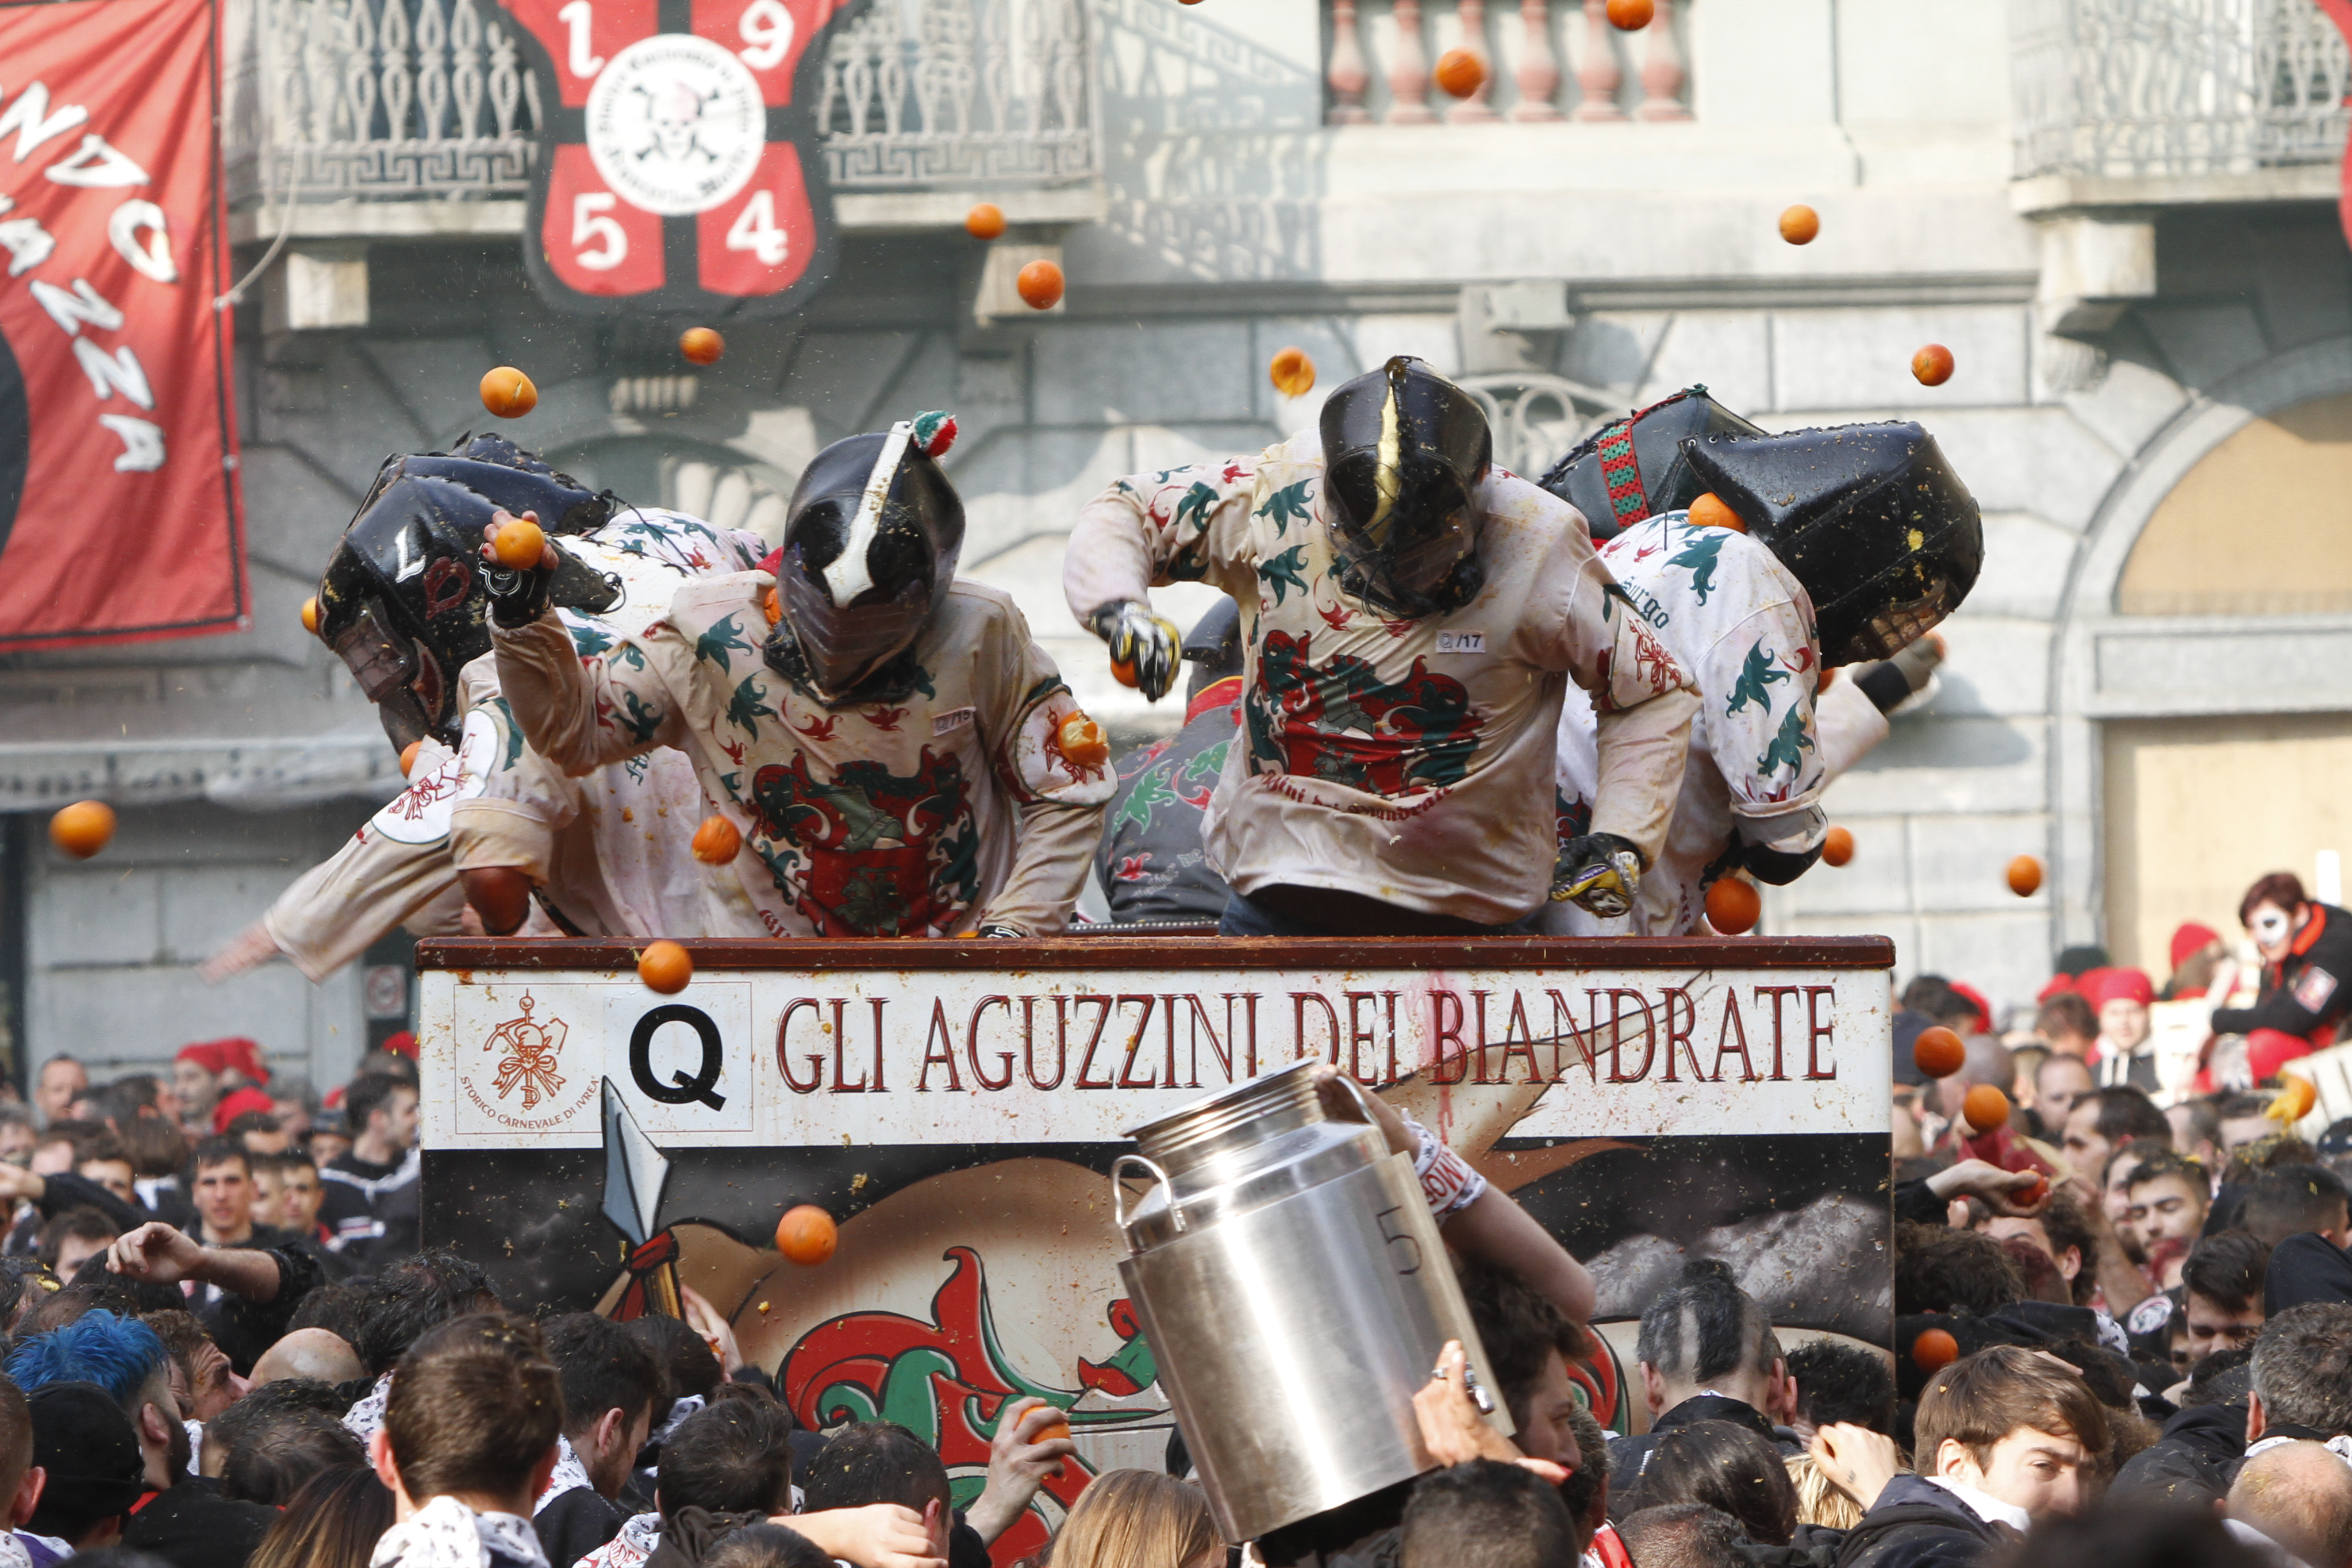 Orange throwers rally under a cart as part of the 'Battle of the Oranges' at Ivrea historical Carnival. The Battle of the Oranges is the main event of Ivrea Carnival in Italy on February 11, 2018. (Photo by Marco Destefanis/Pacific Press/Sipa USA)(Sipa via AP Images)